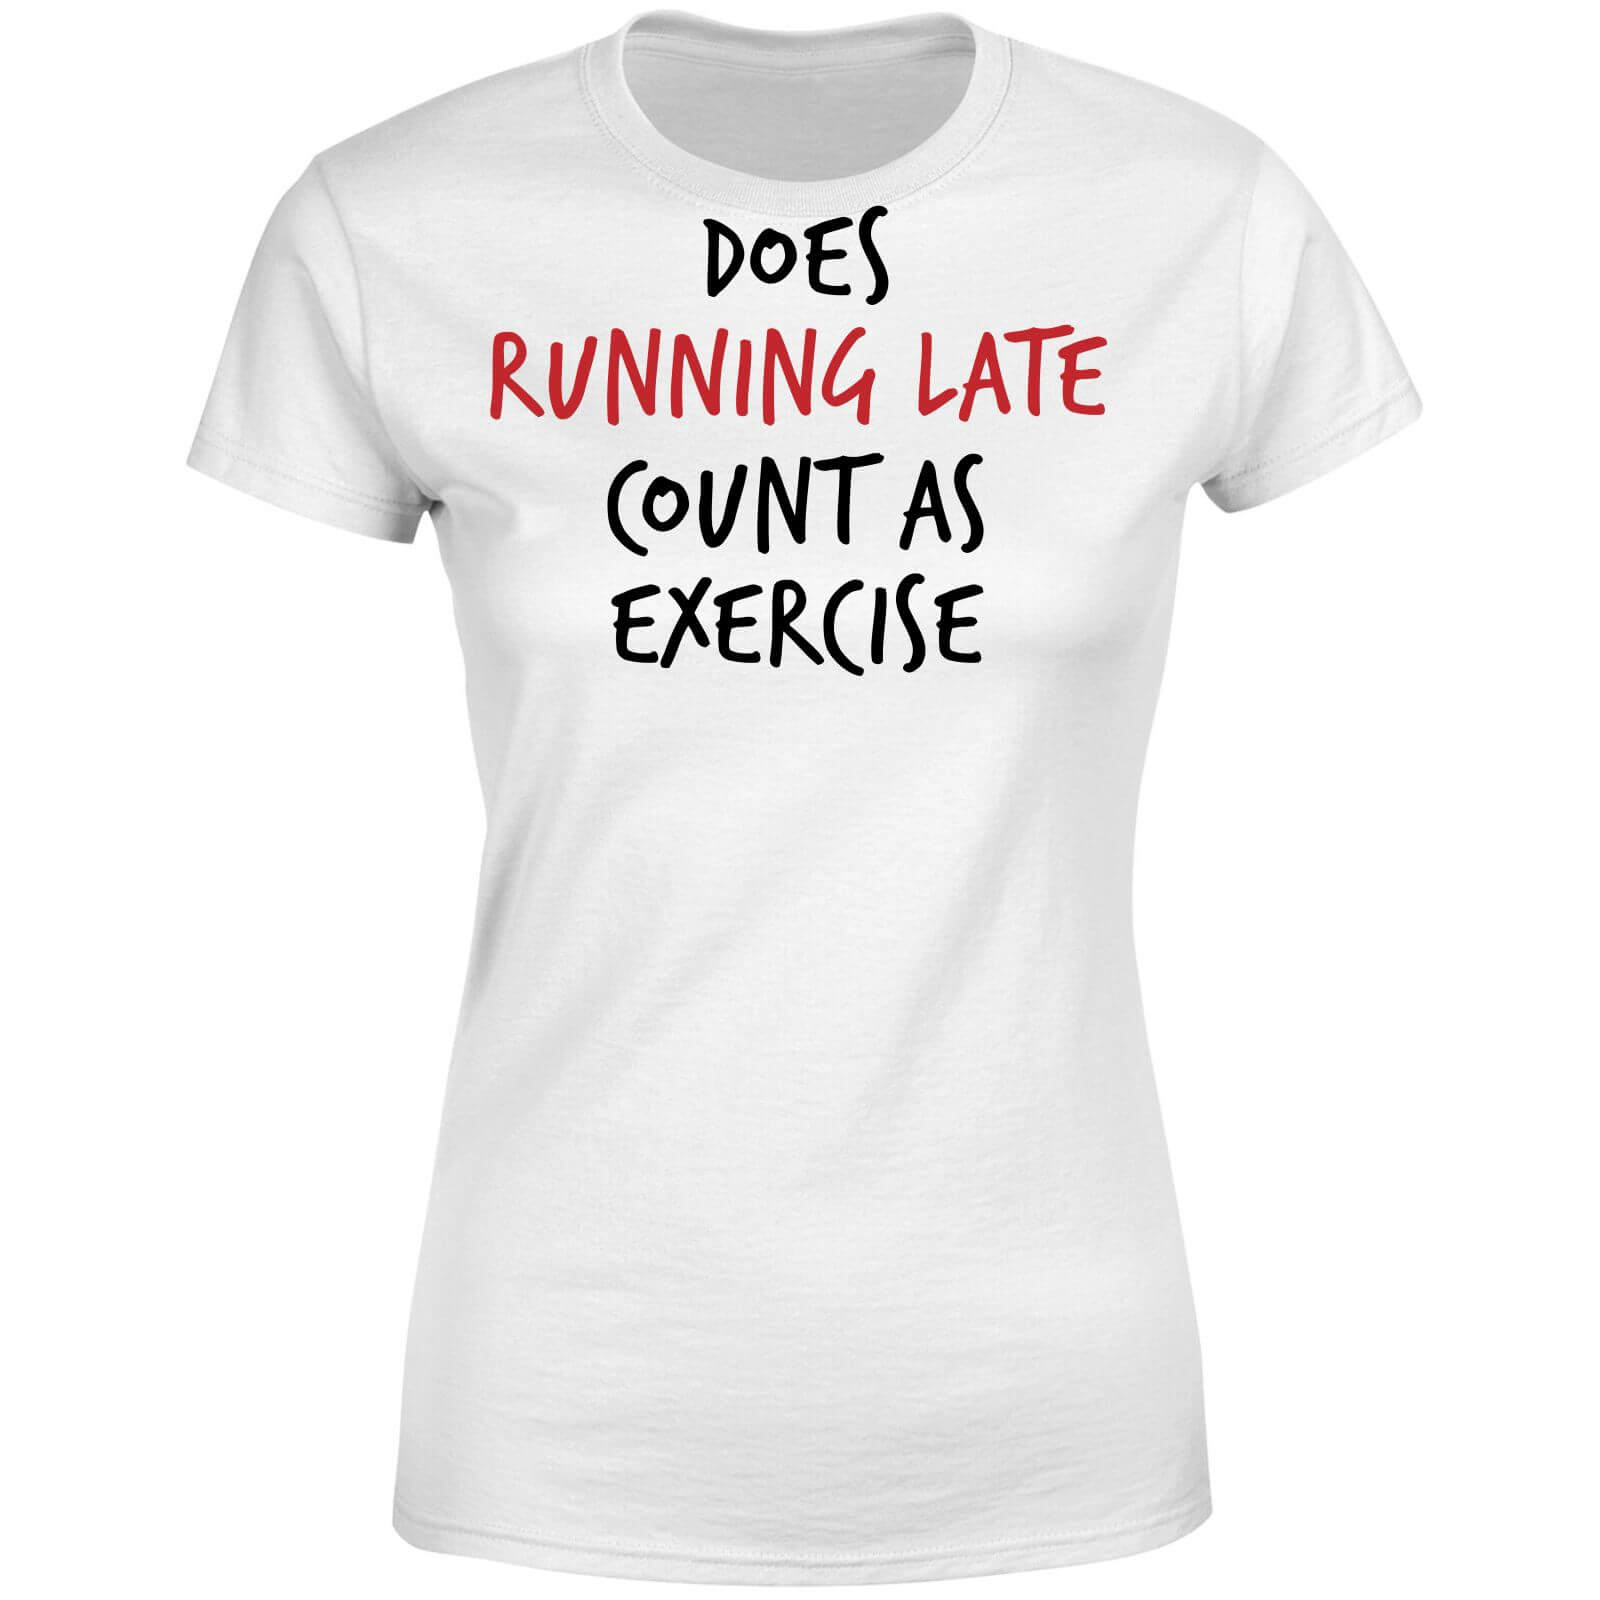 Does Running Late Count as Exercise Women